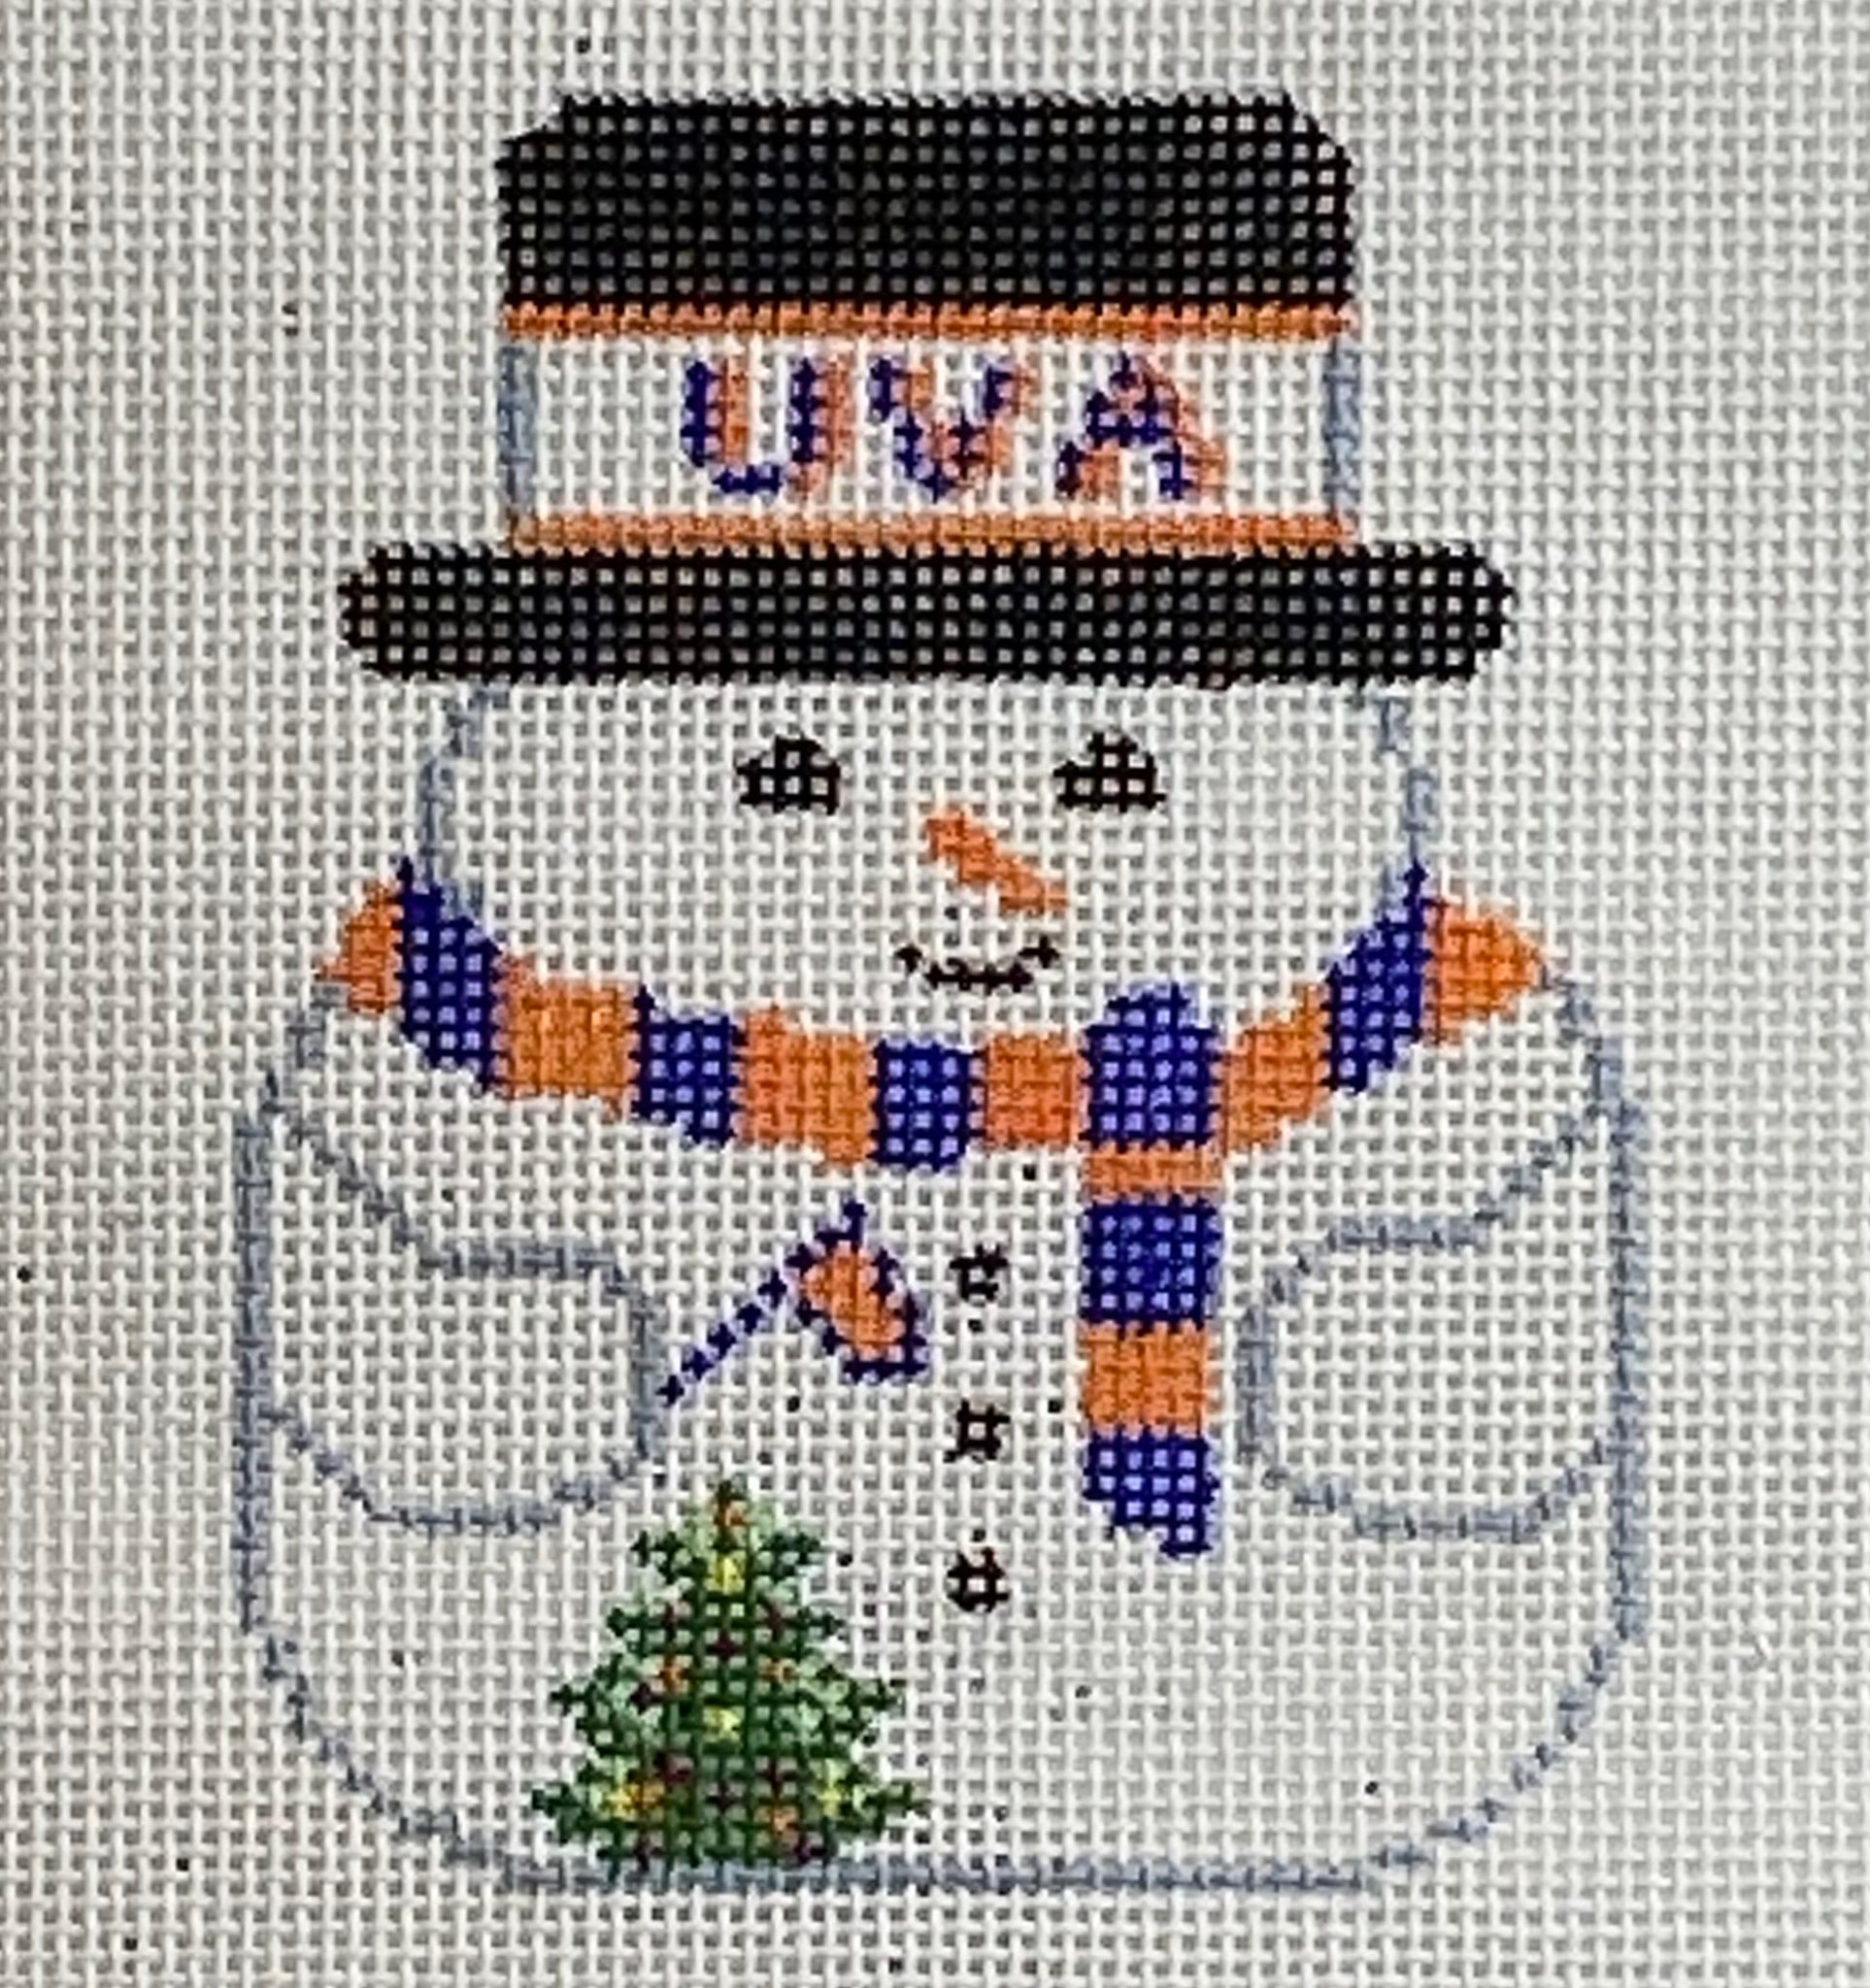 UVA Snowman Ornament 0-95